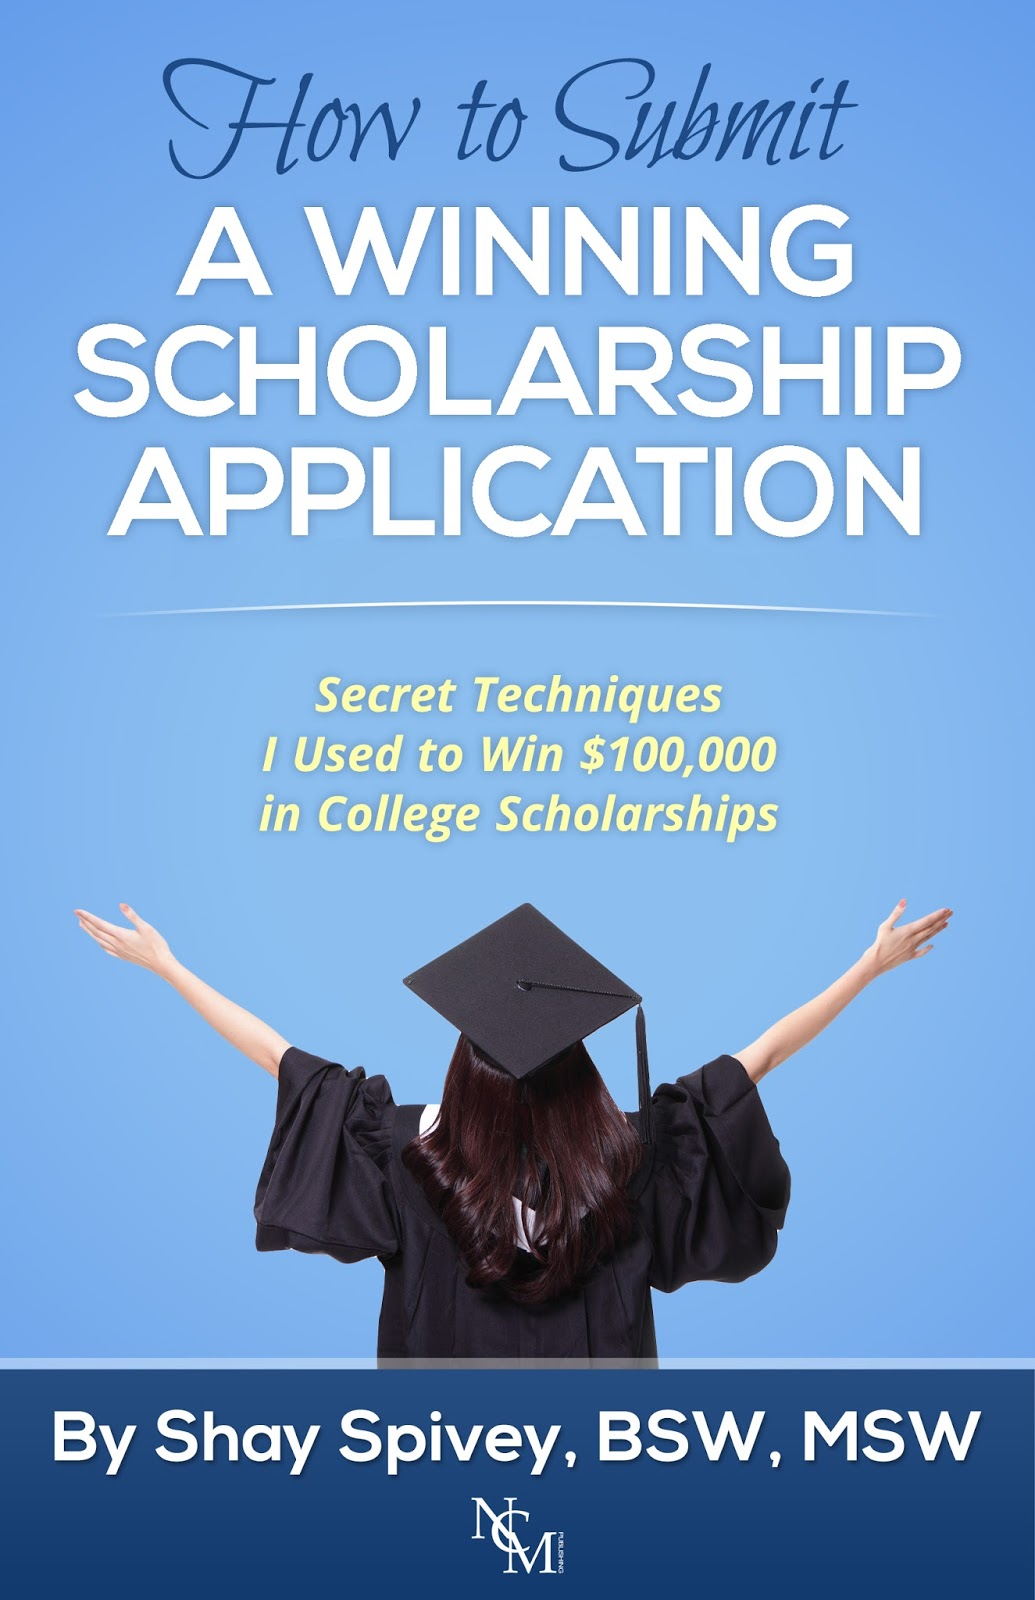 scholarship advisor program how to submit a winning scholarship application